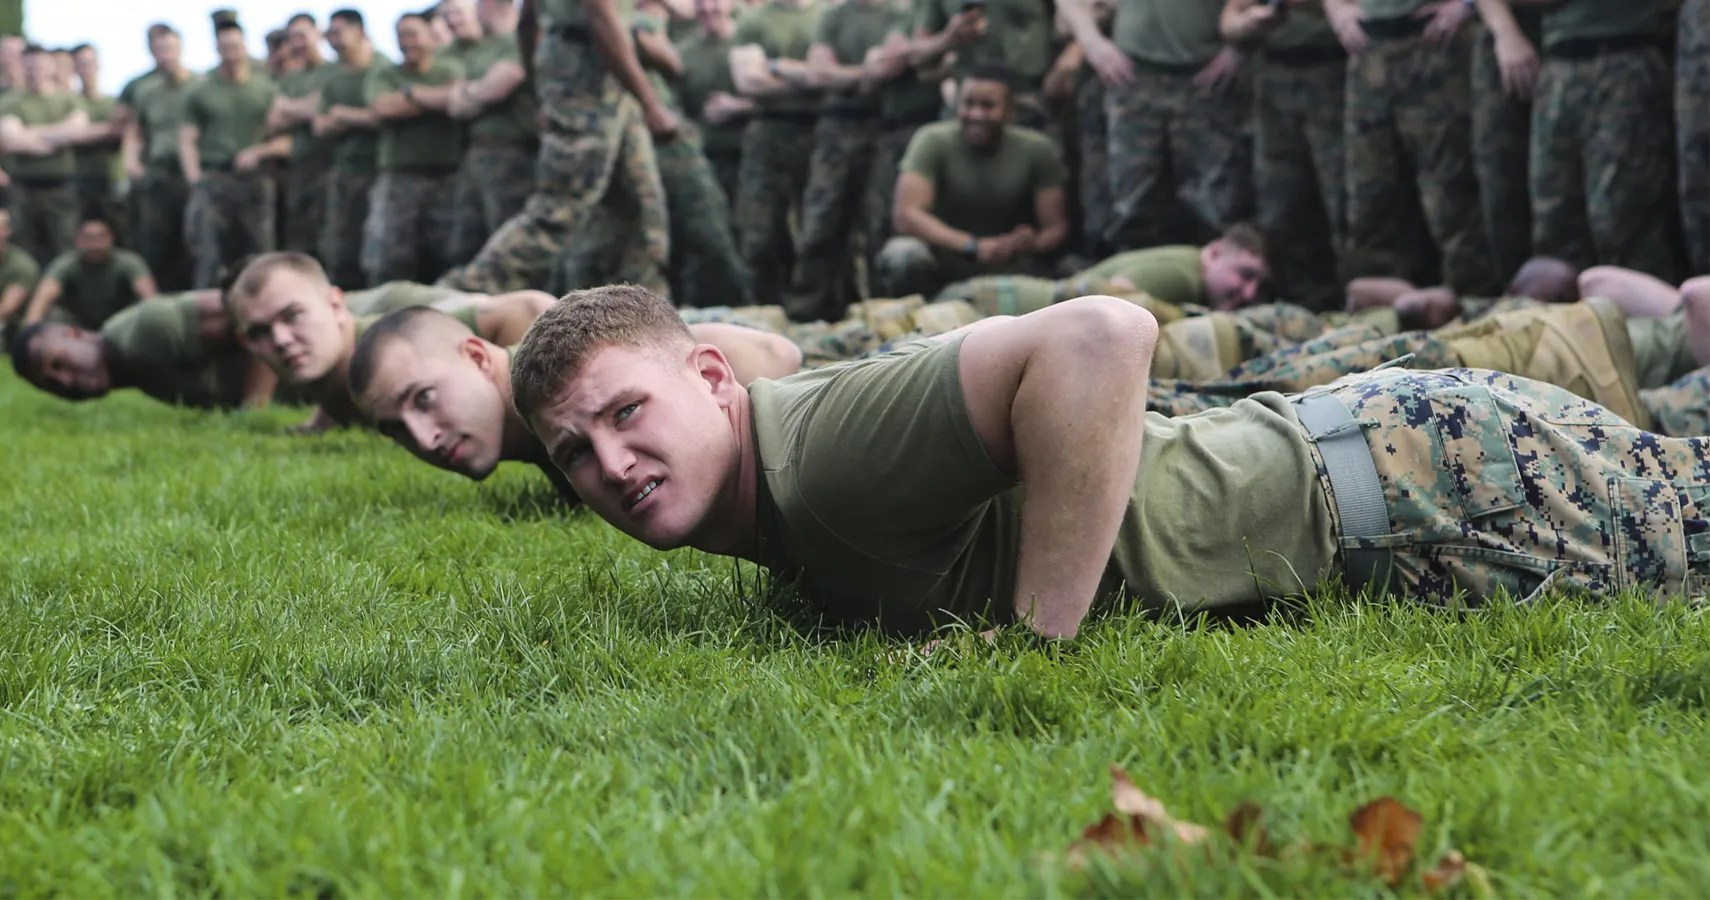 10 Military Workouts You Have To Be Good To Be In The Army